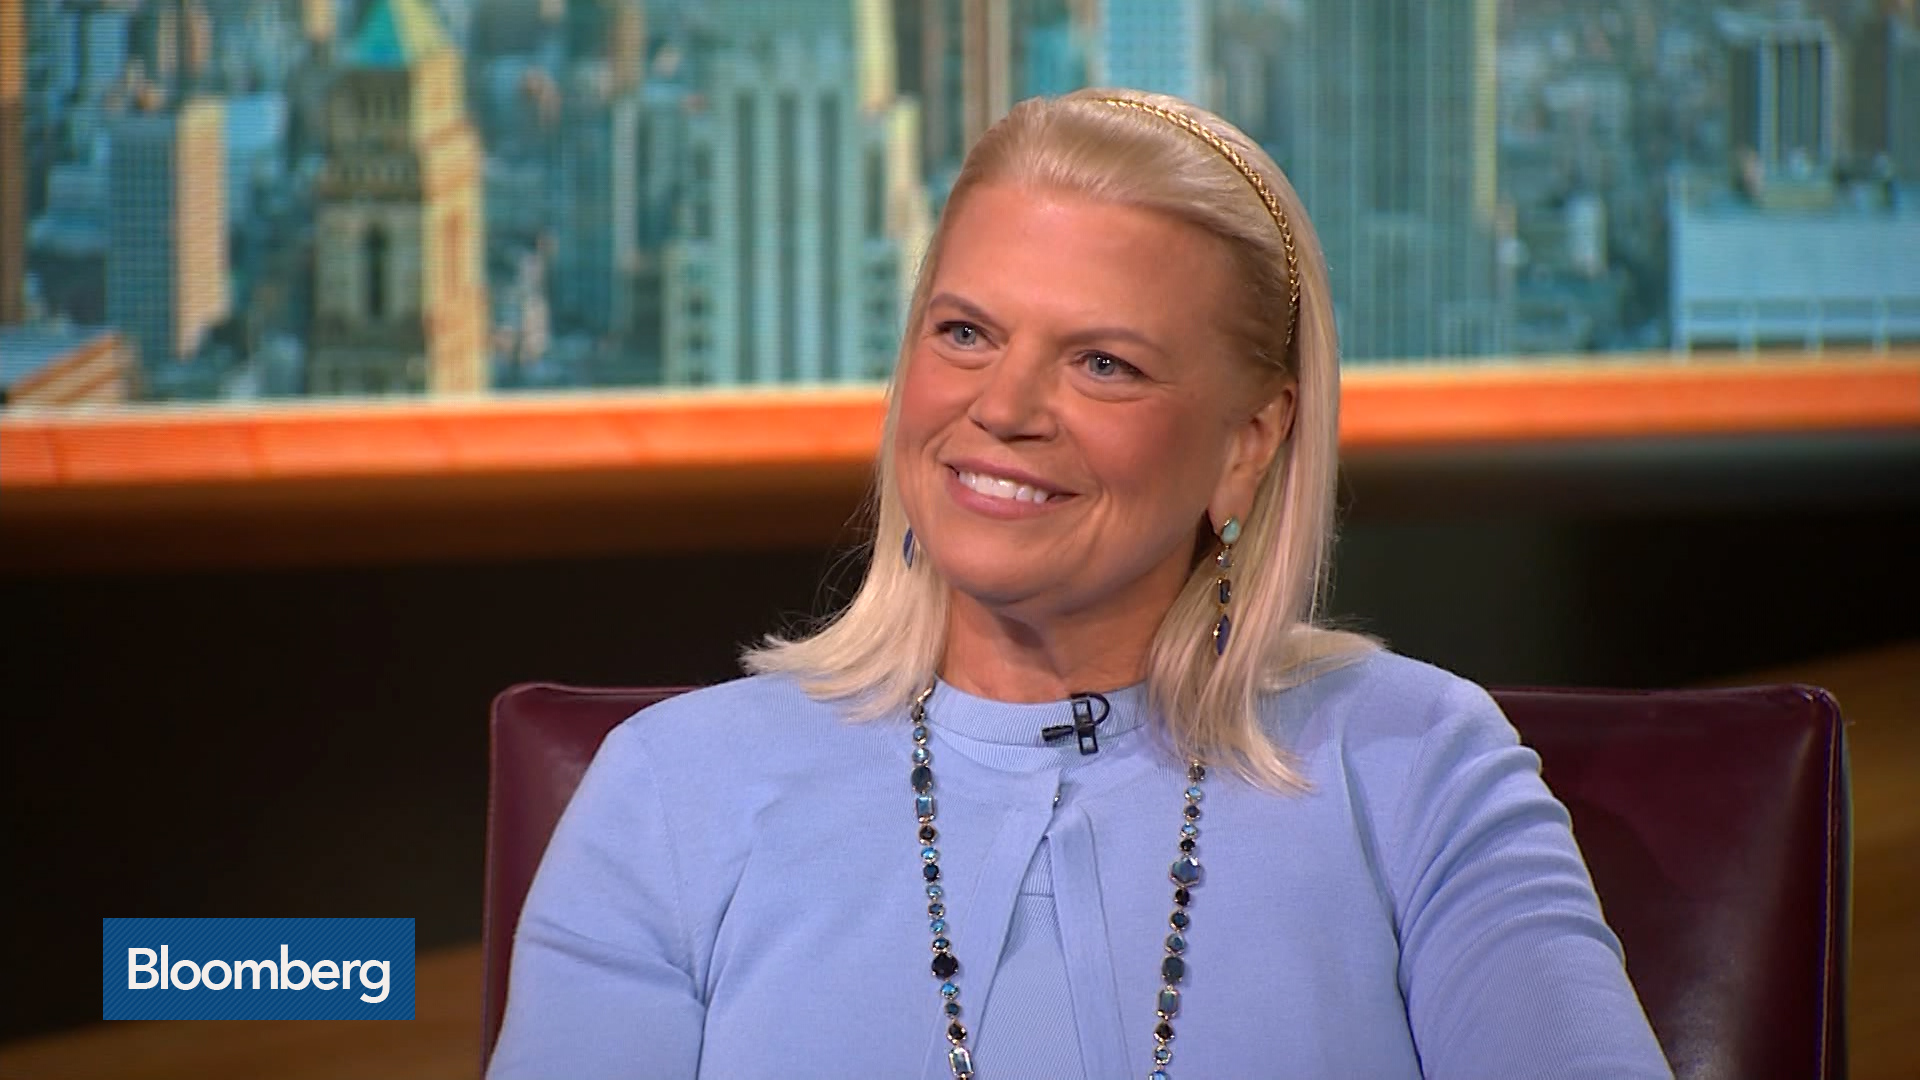 IBM CEO Ginni Rometty on Quantum Computing, Blockchain